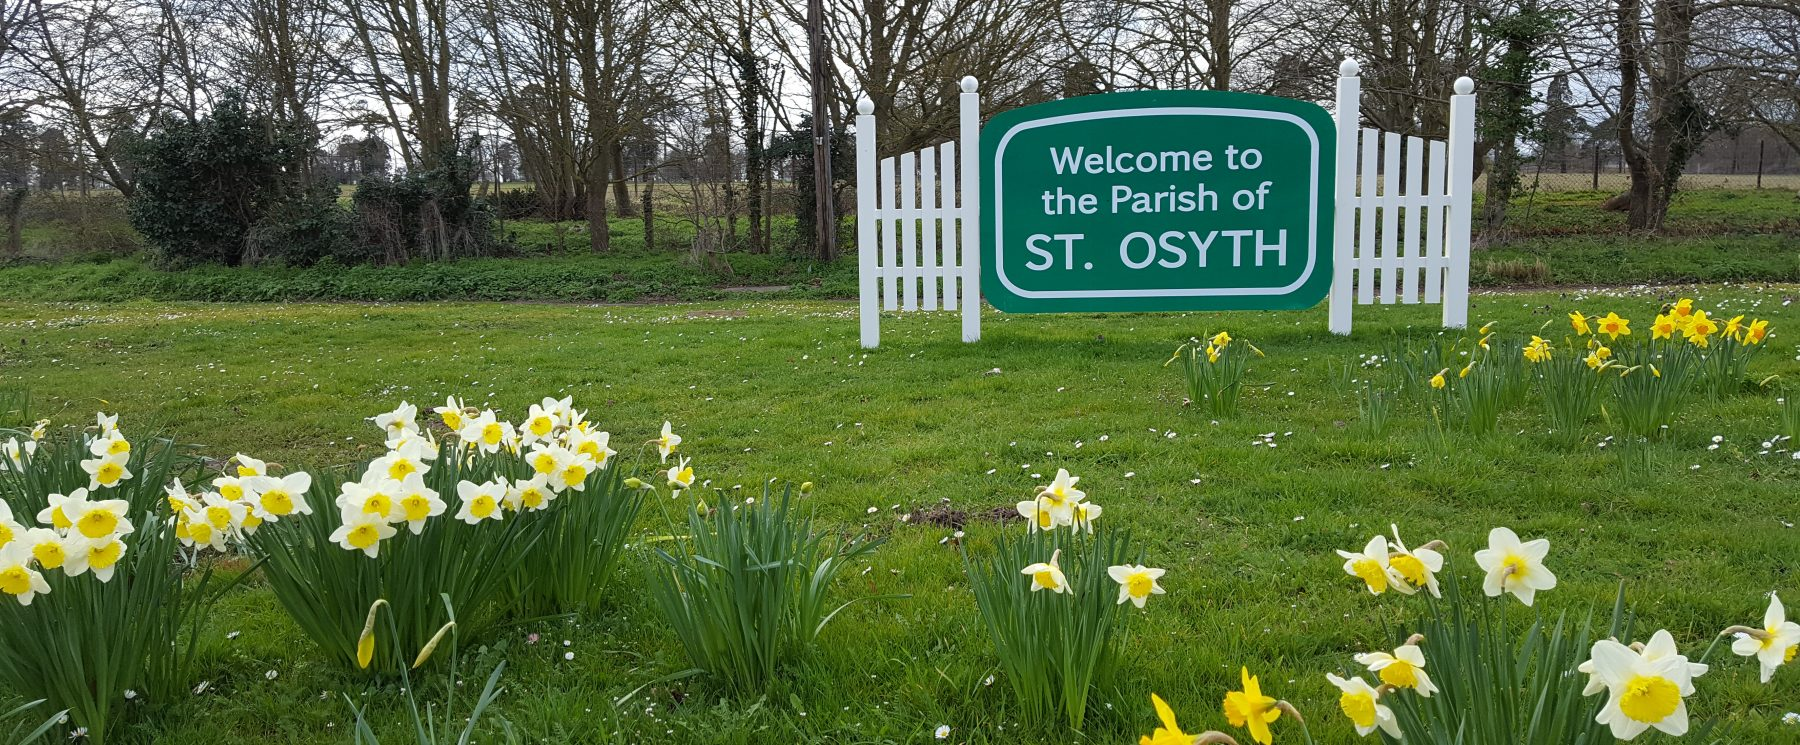 St Osyth Parish Council